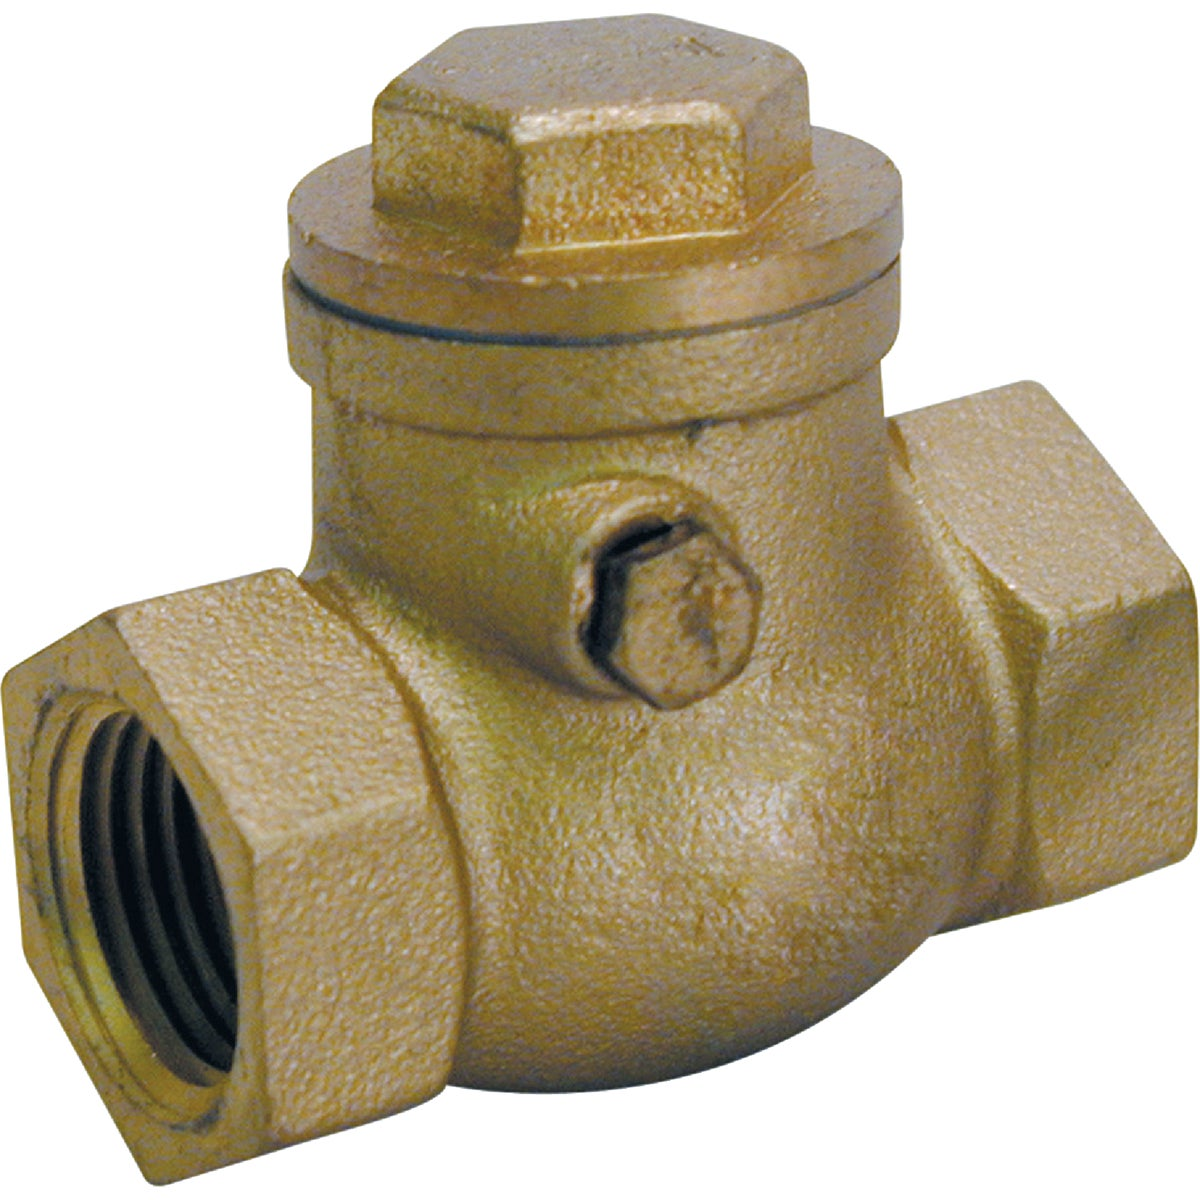 "1-1/4"" CHECK VALVE - 101-006NL by Mueller B K"